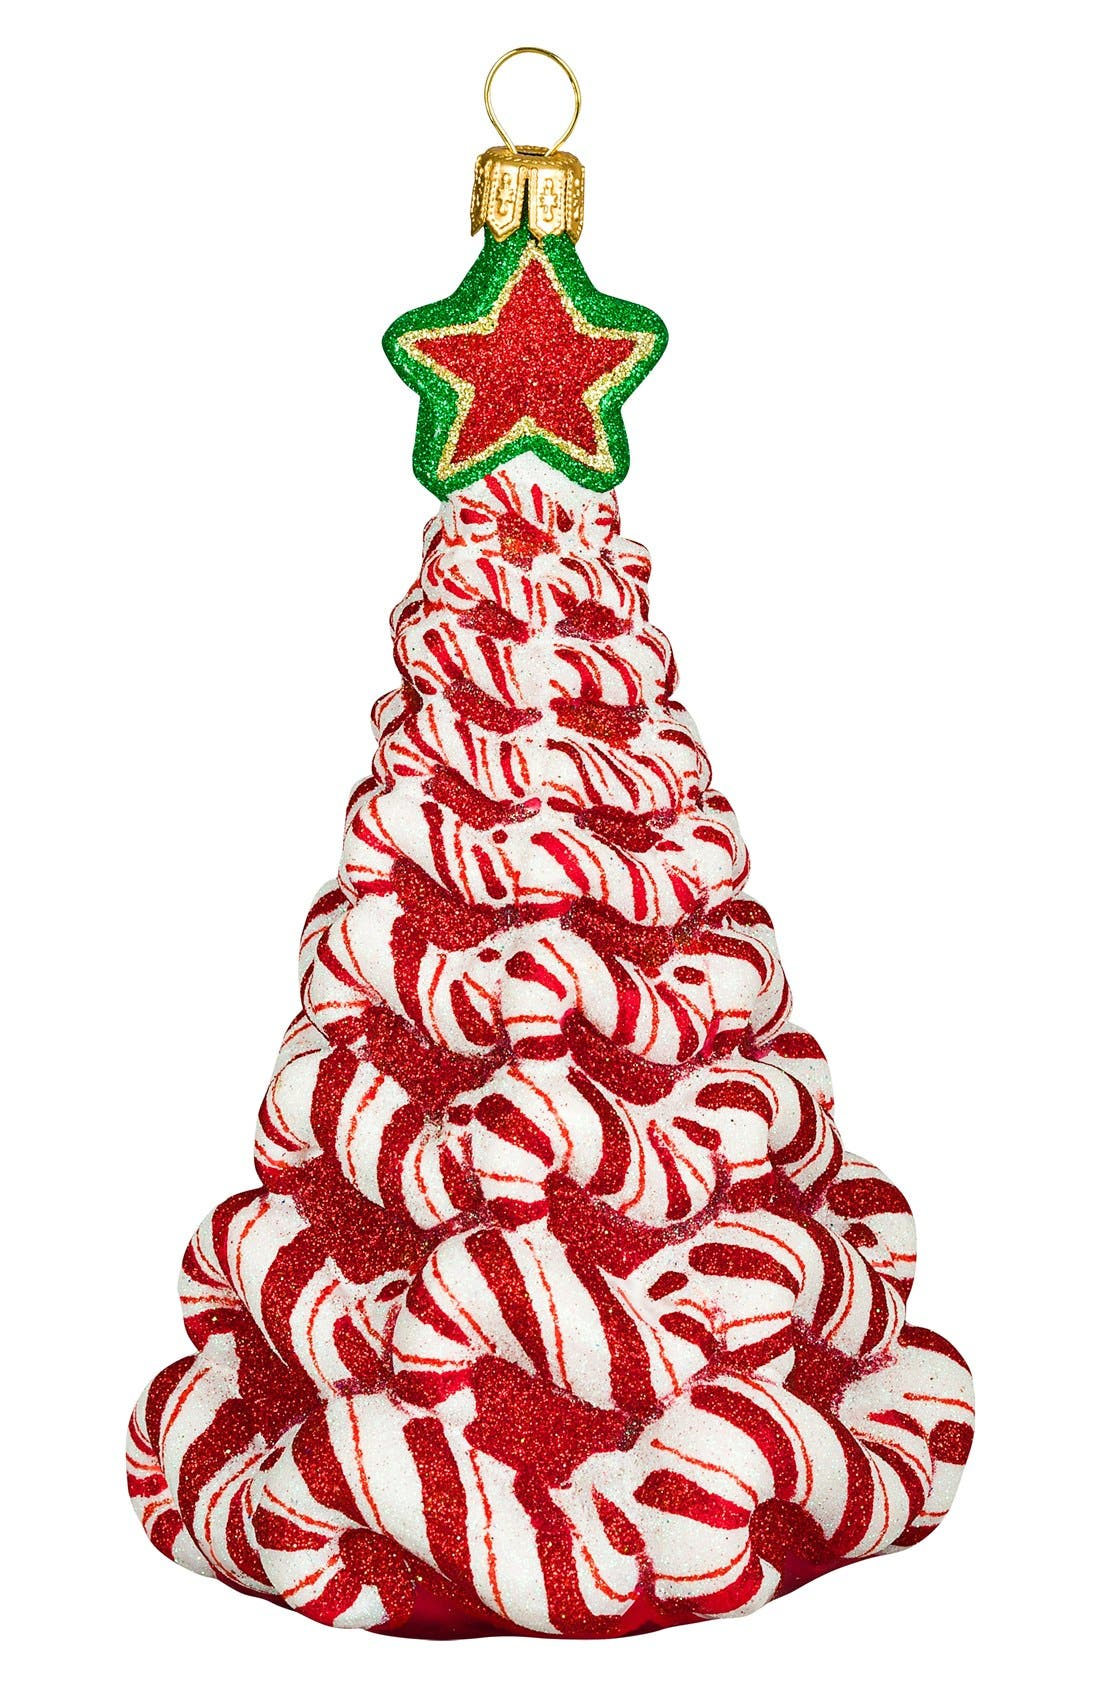 Alternate Image 1 Selected - Joy to theWorld Collectibles 'GlitterazziChristmas Tree' Ornament